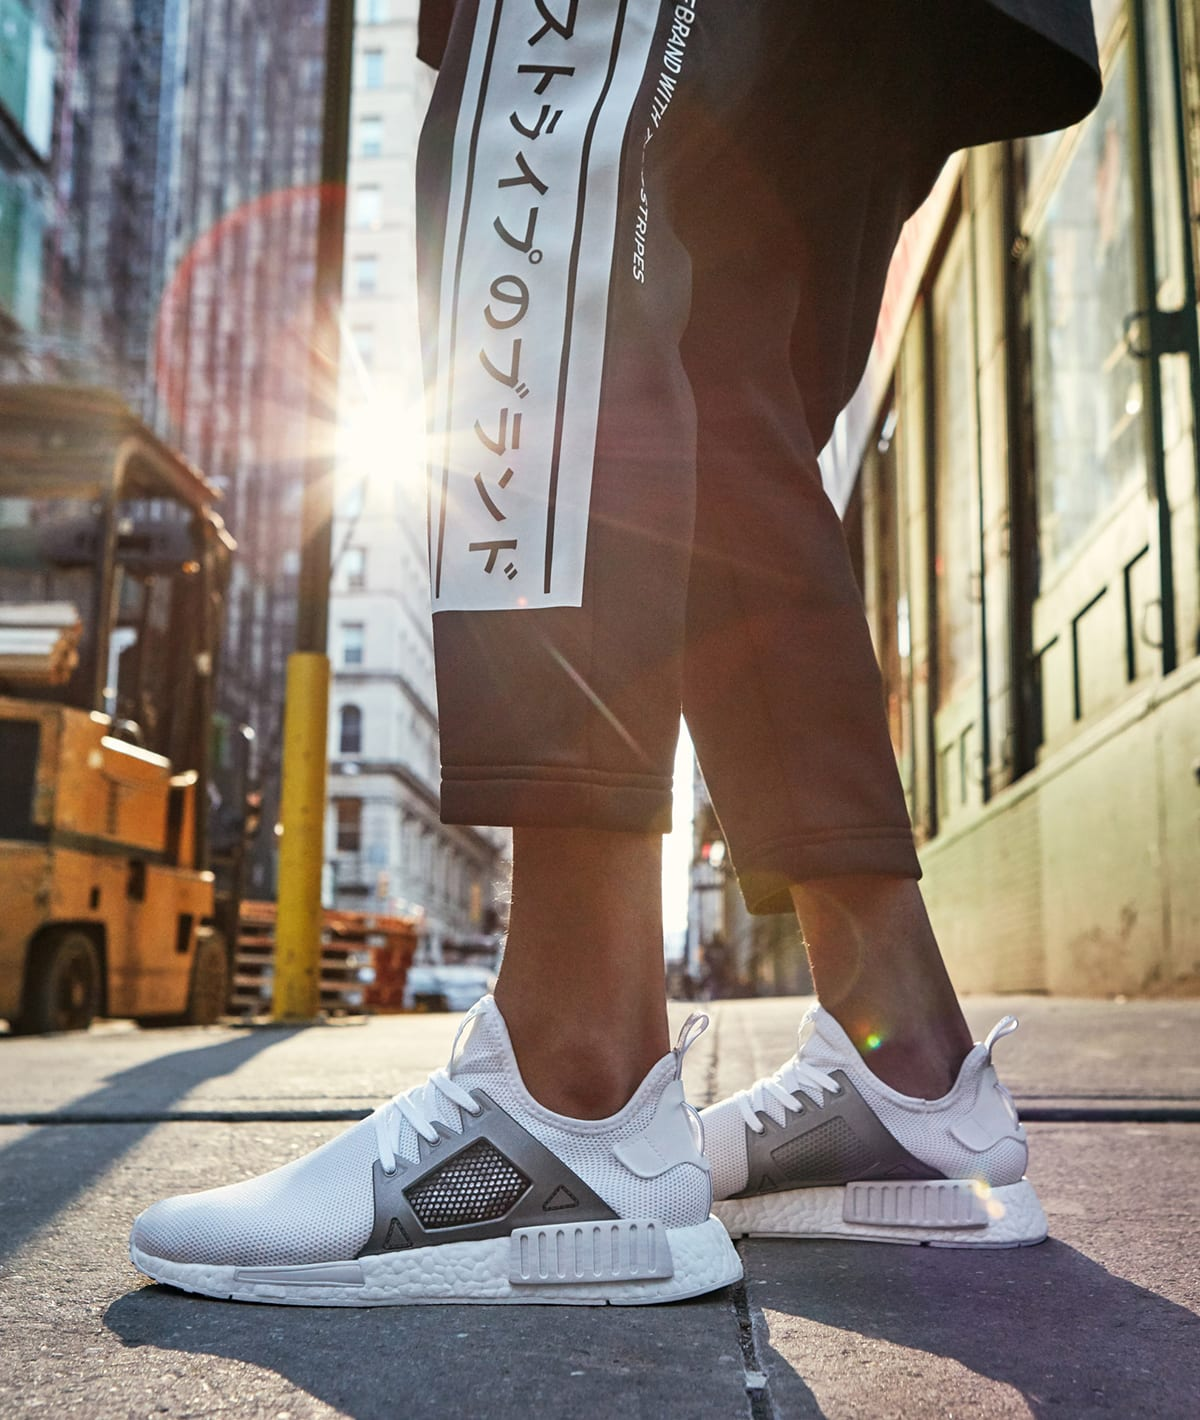 adidas nmd clothing line